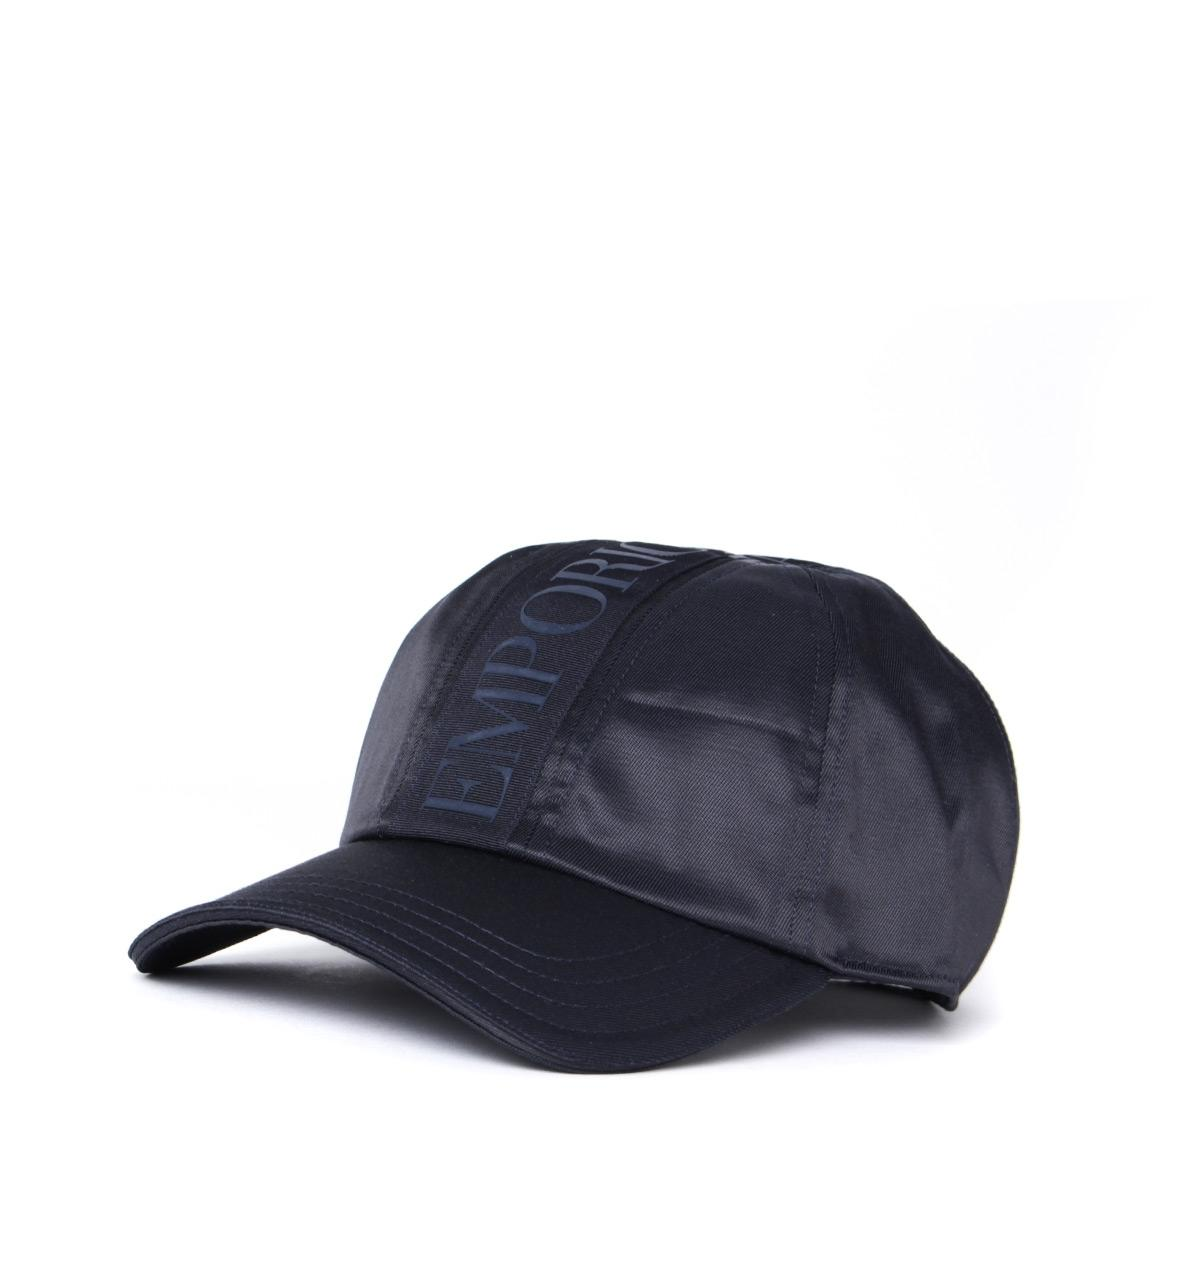 9e6799b6 Lyst - Emporio Armani Tape Logo Navy Cap in Blue for Men